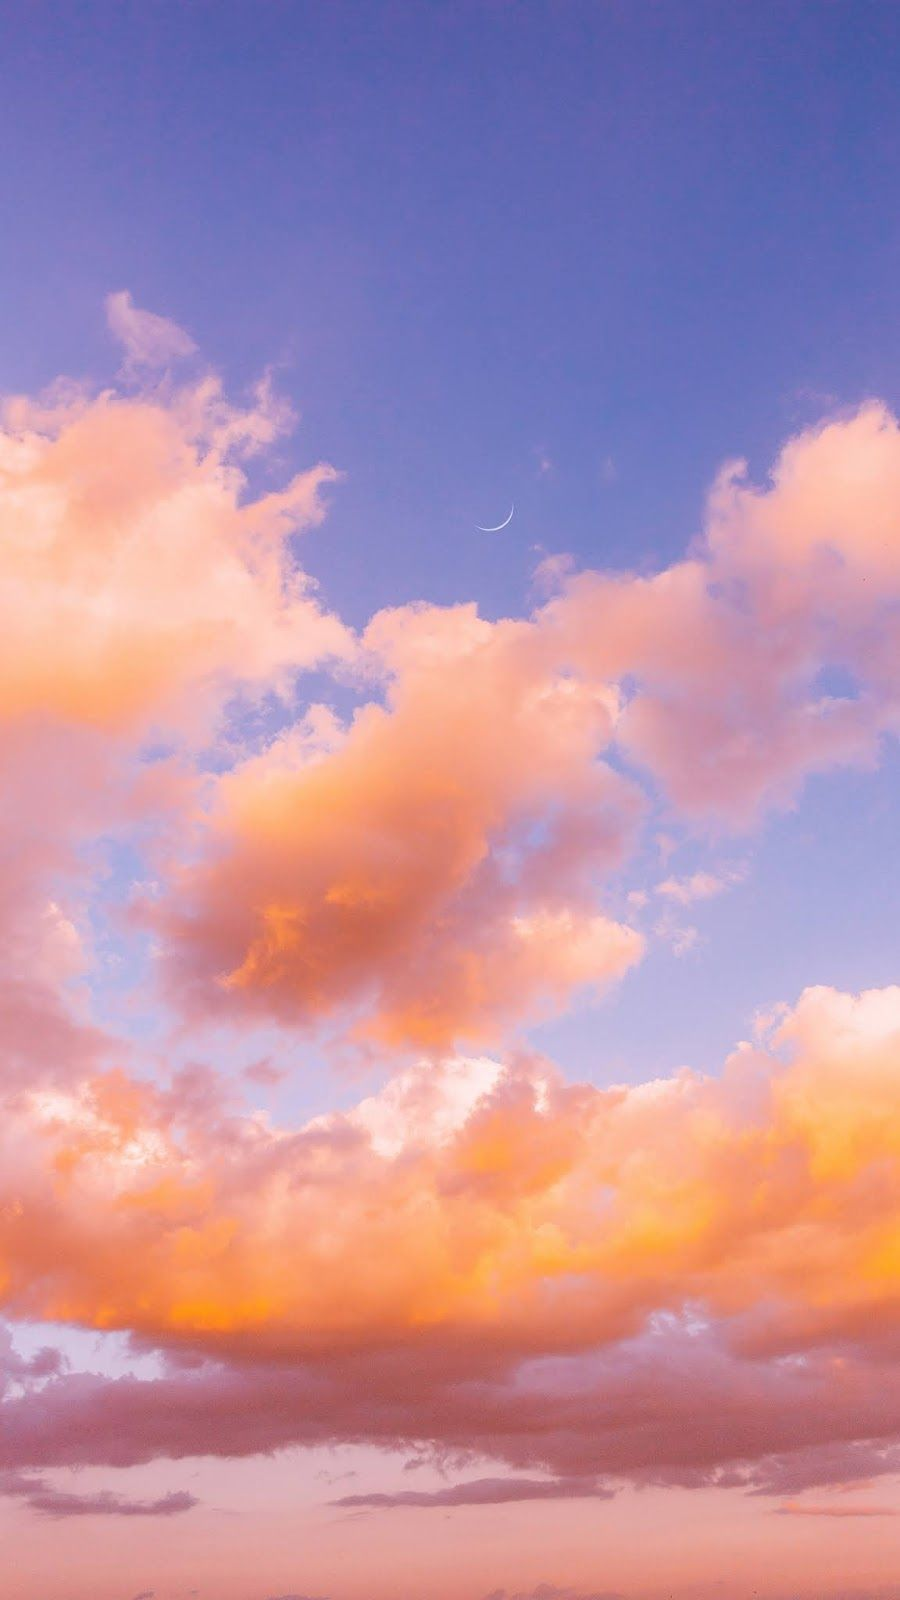 Clouds Plain Wallpaper Iphone Plain Wallpaper Live Wallpaper Iphone